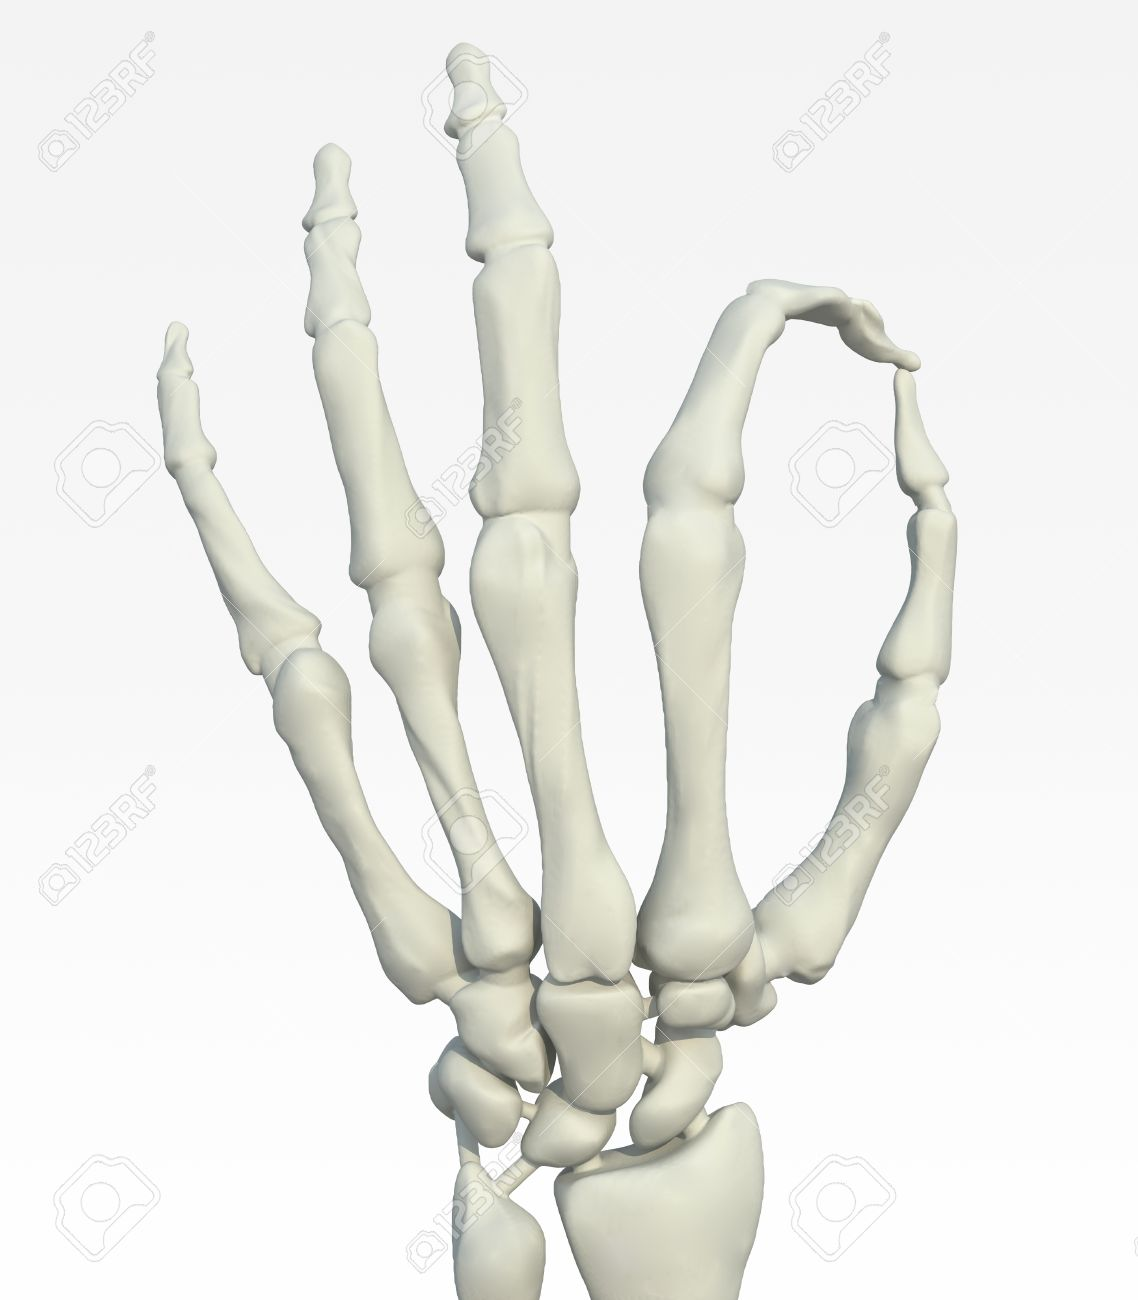 Wondrous Skeleton Hand Making Ok Gesture 3D Illustration Stock Photo Wiring Cloud Tziciuggs Outletorg